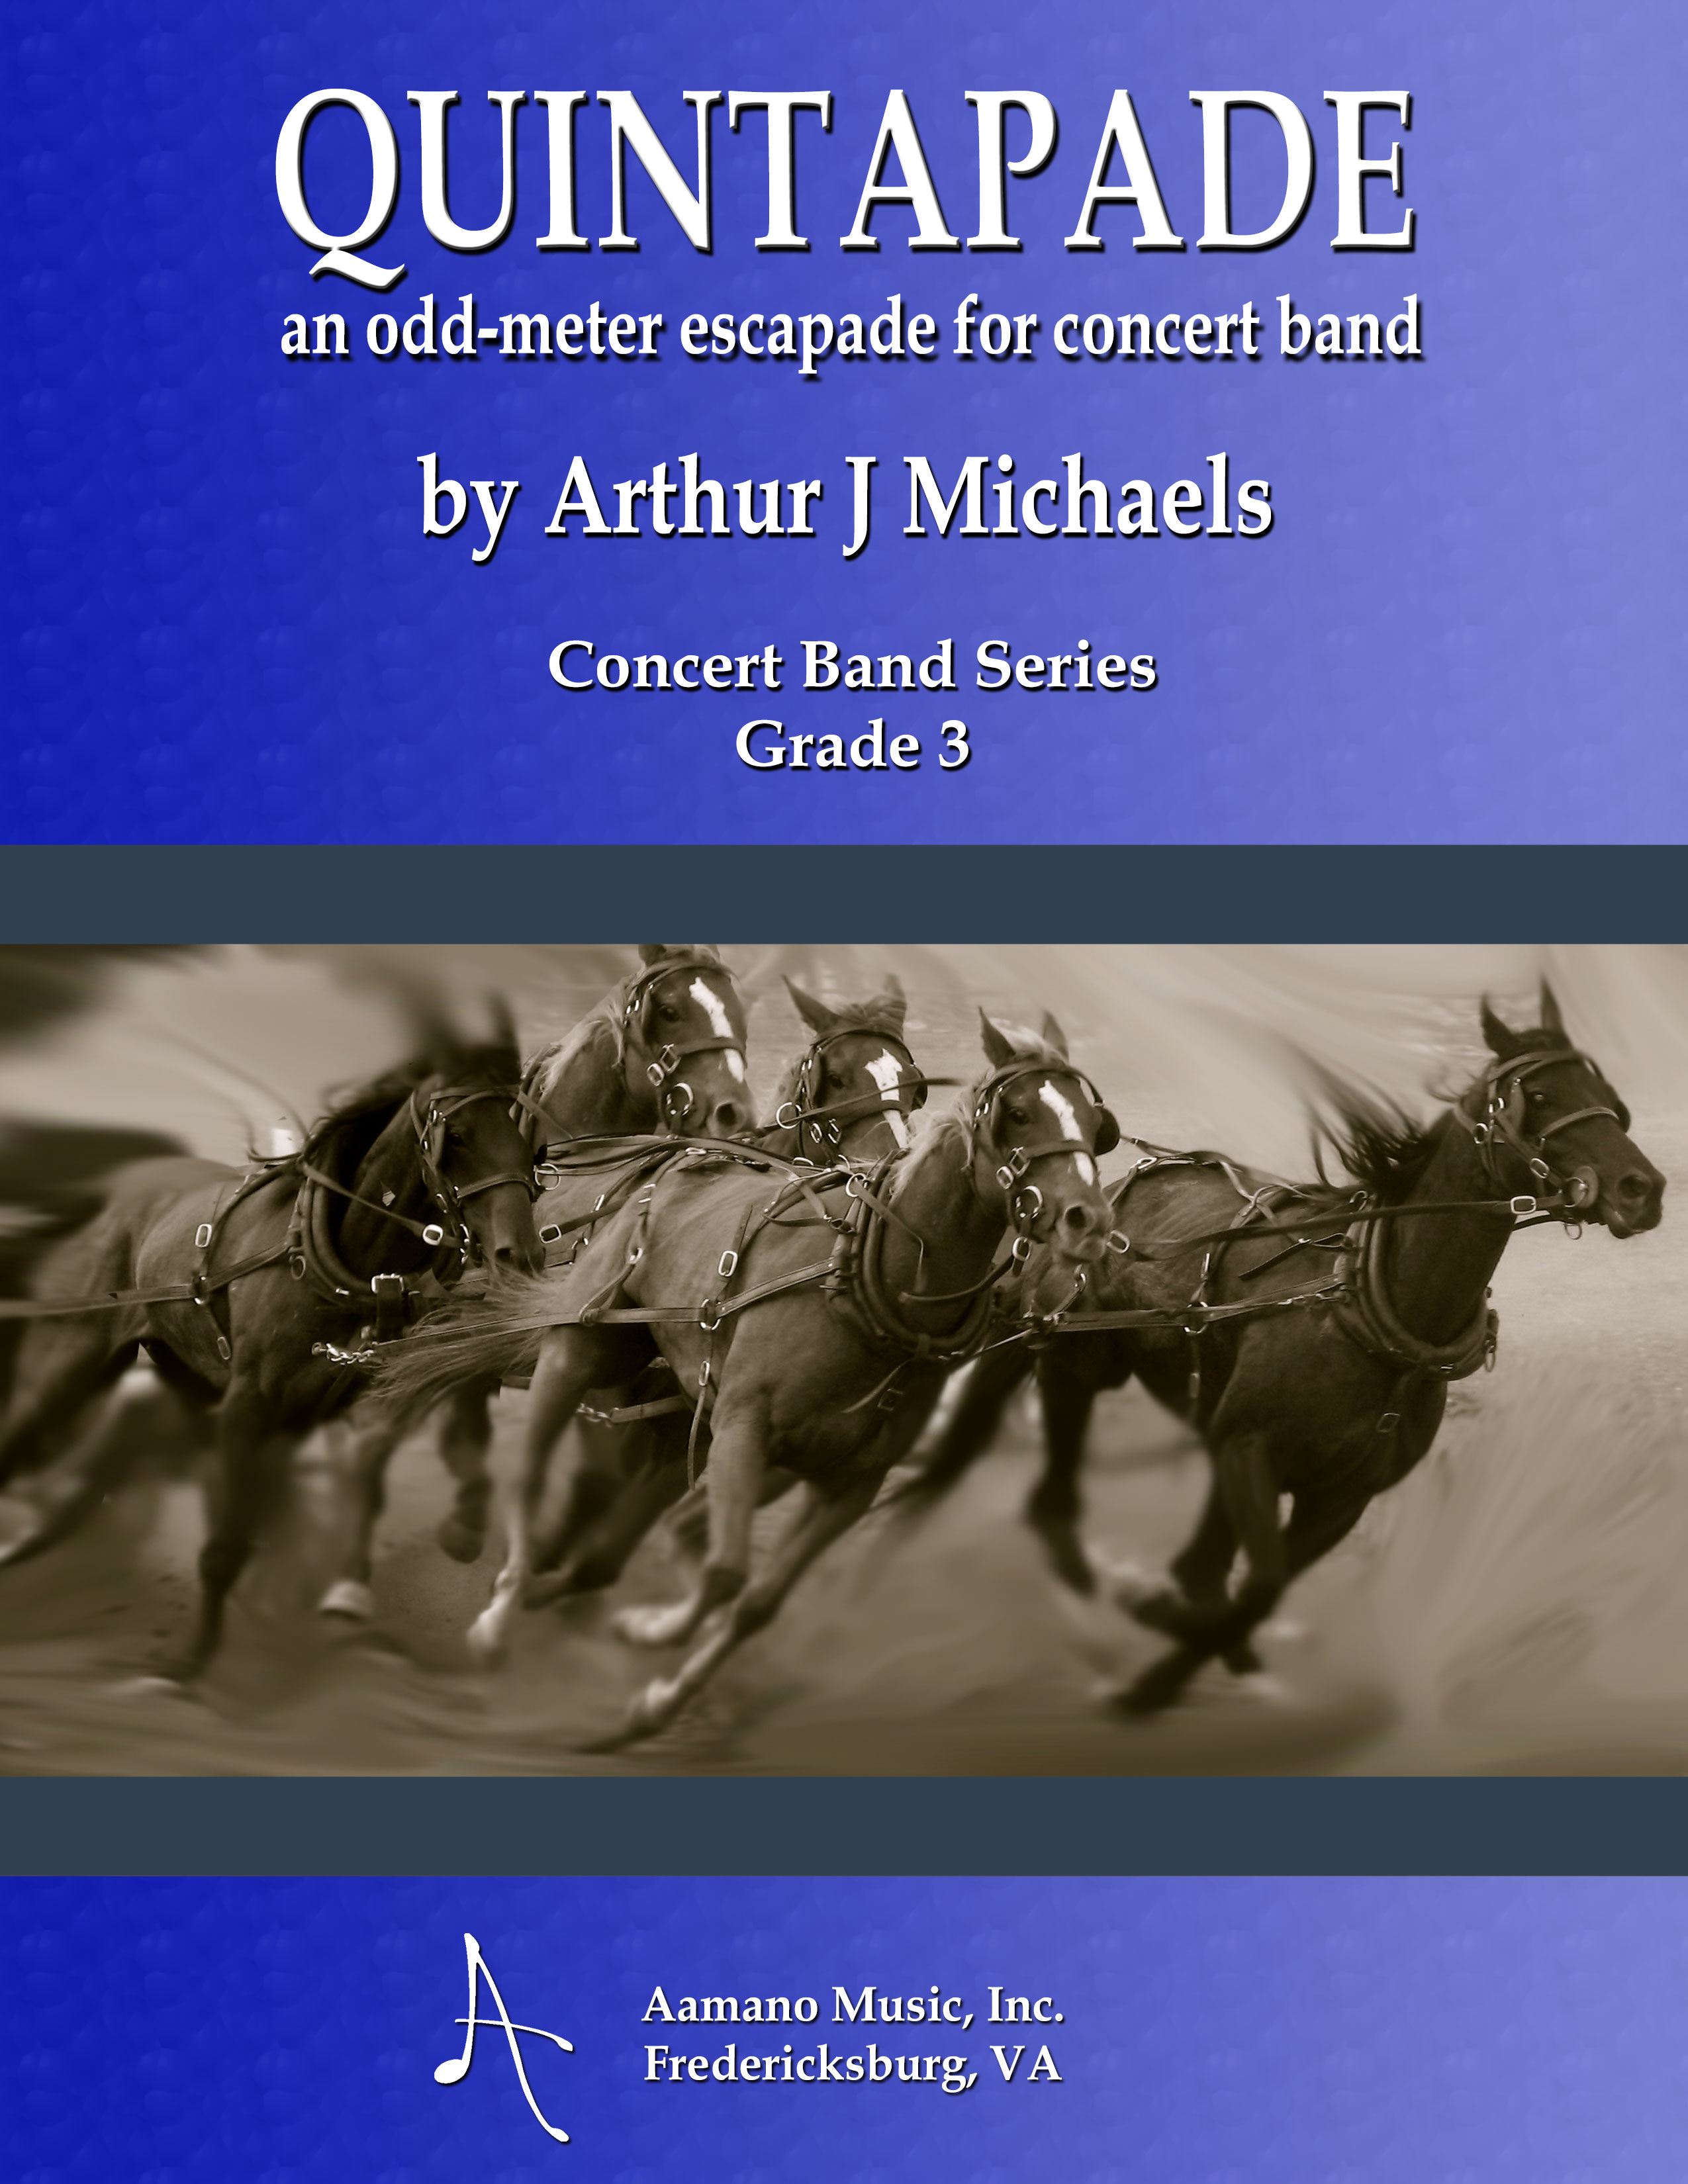 COVER---QUINTAPADE---ARTHUR-MICHAELS---CONCERT-BAND-SERIES